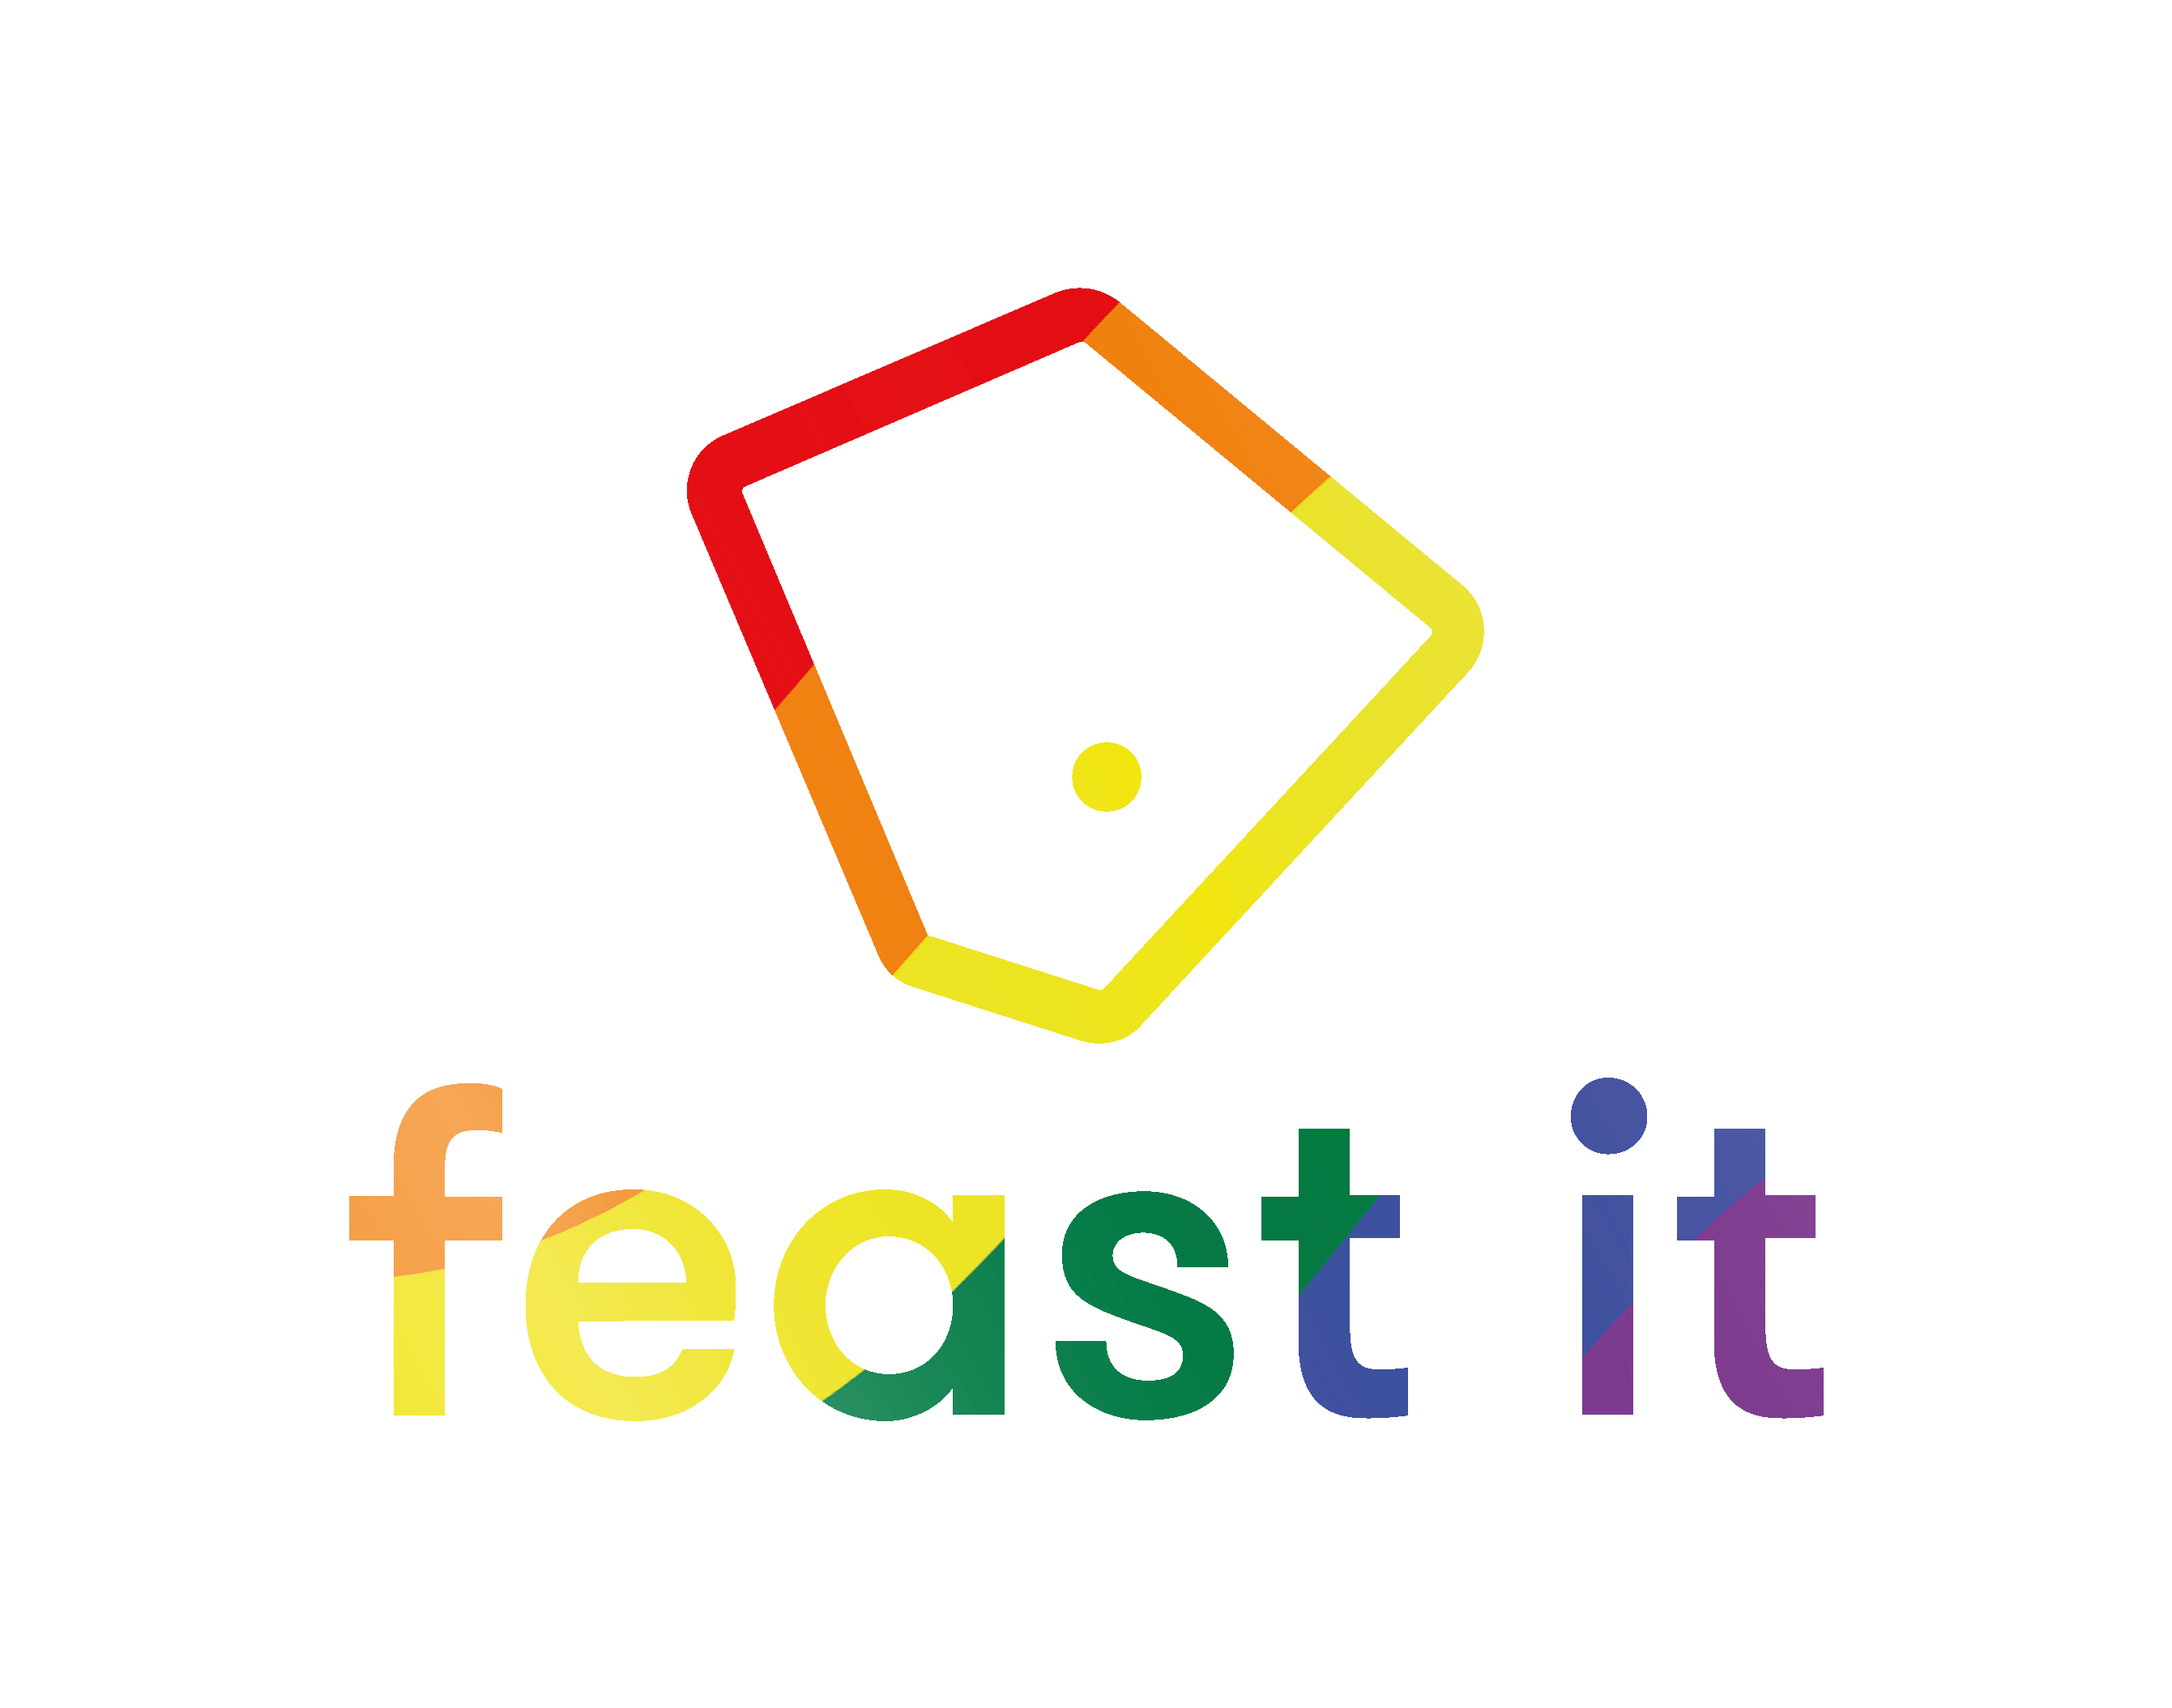 Feast It Logo 1 copy